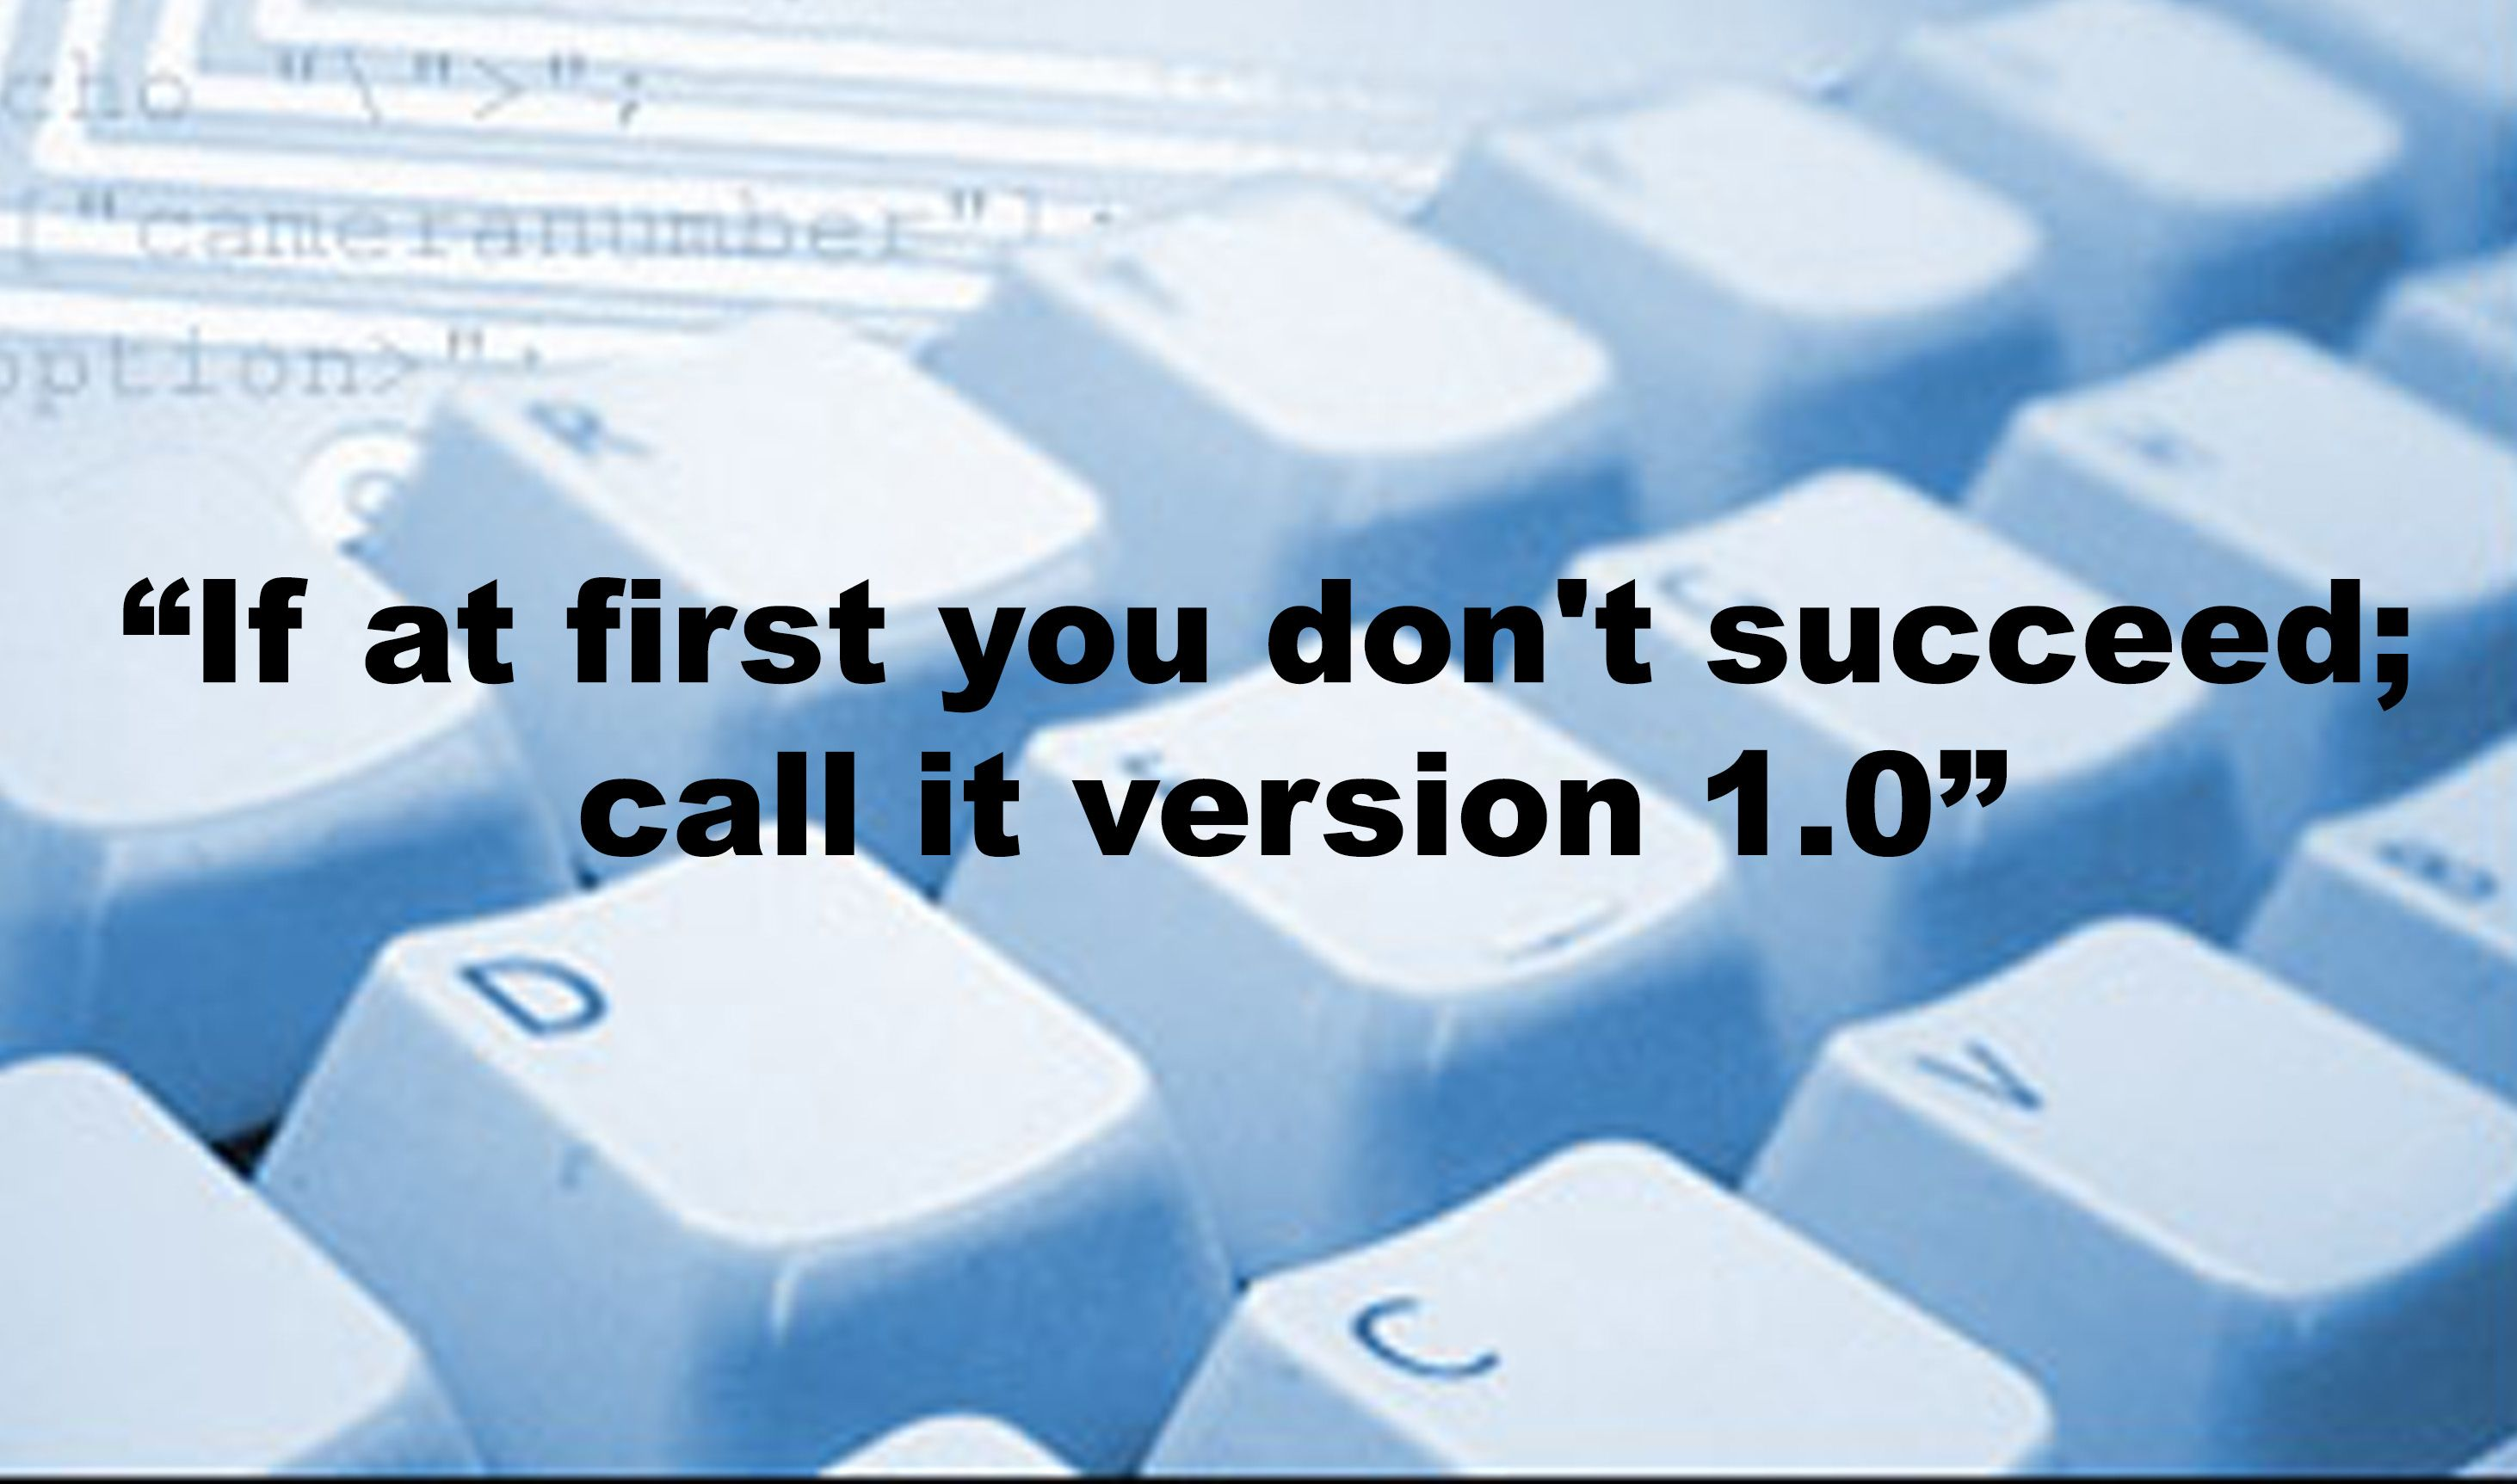 Version 1.0. Dallas IT staffing firm. Technology quotes